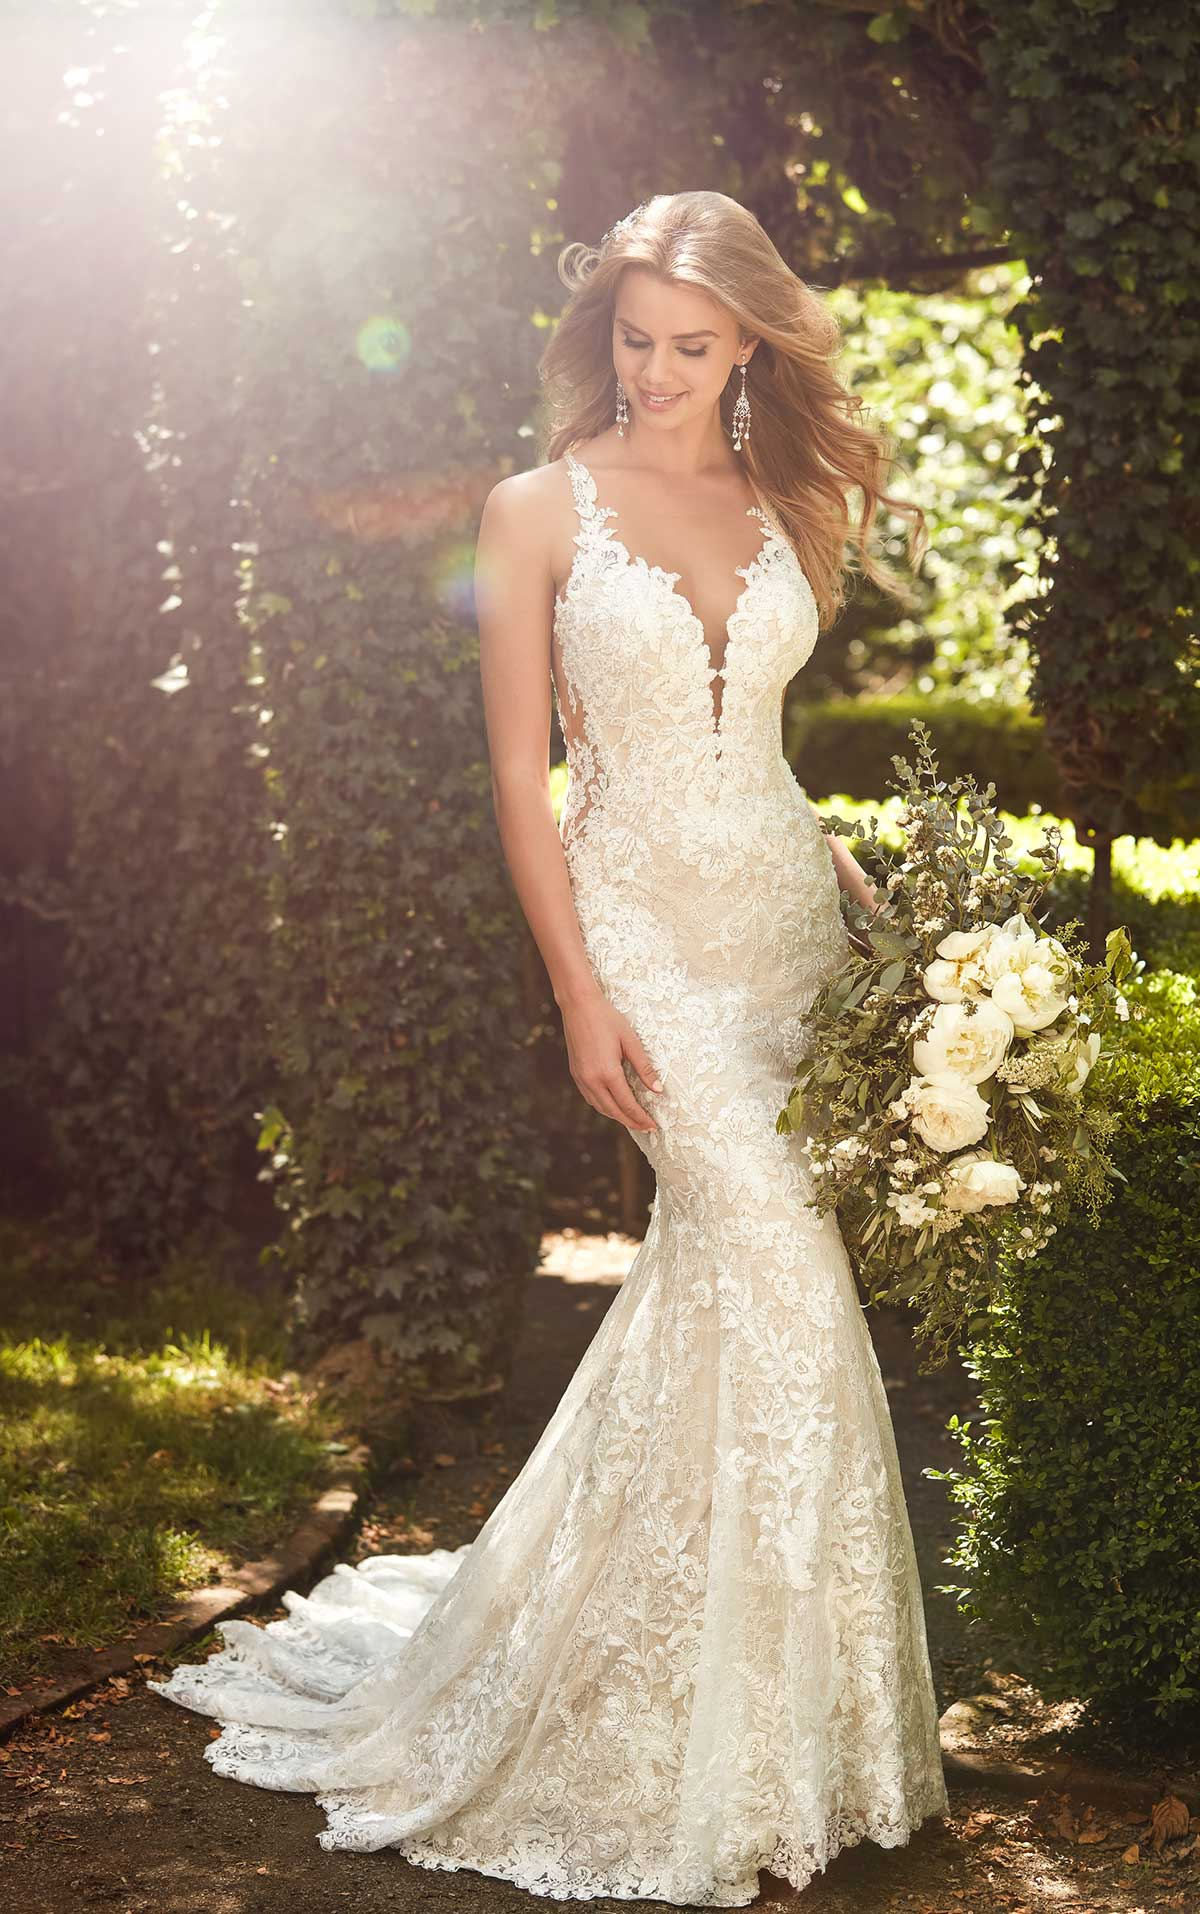 Couture Bridal Label Martina Liana Releases Newest